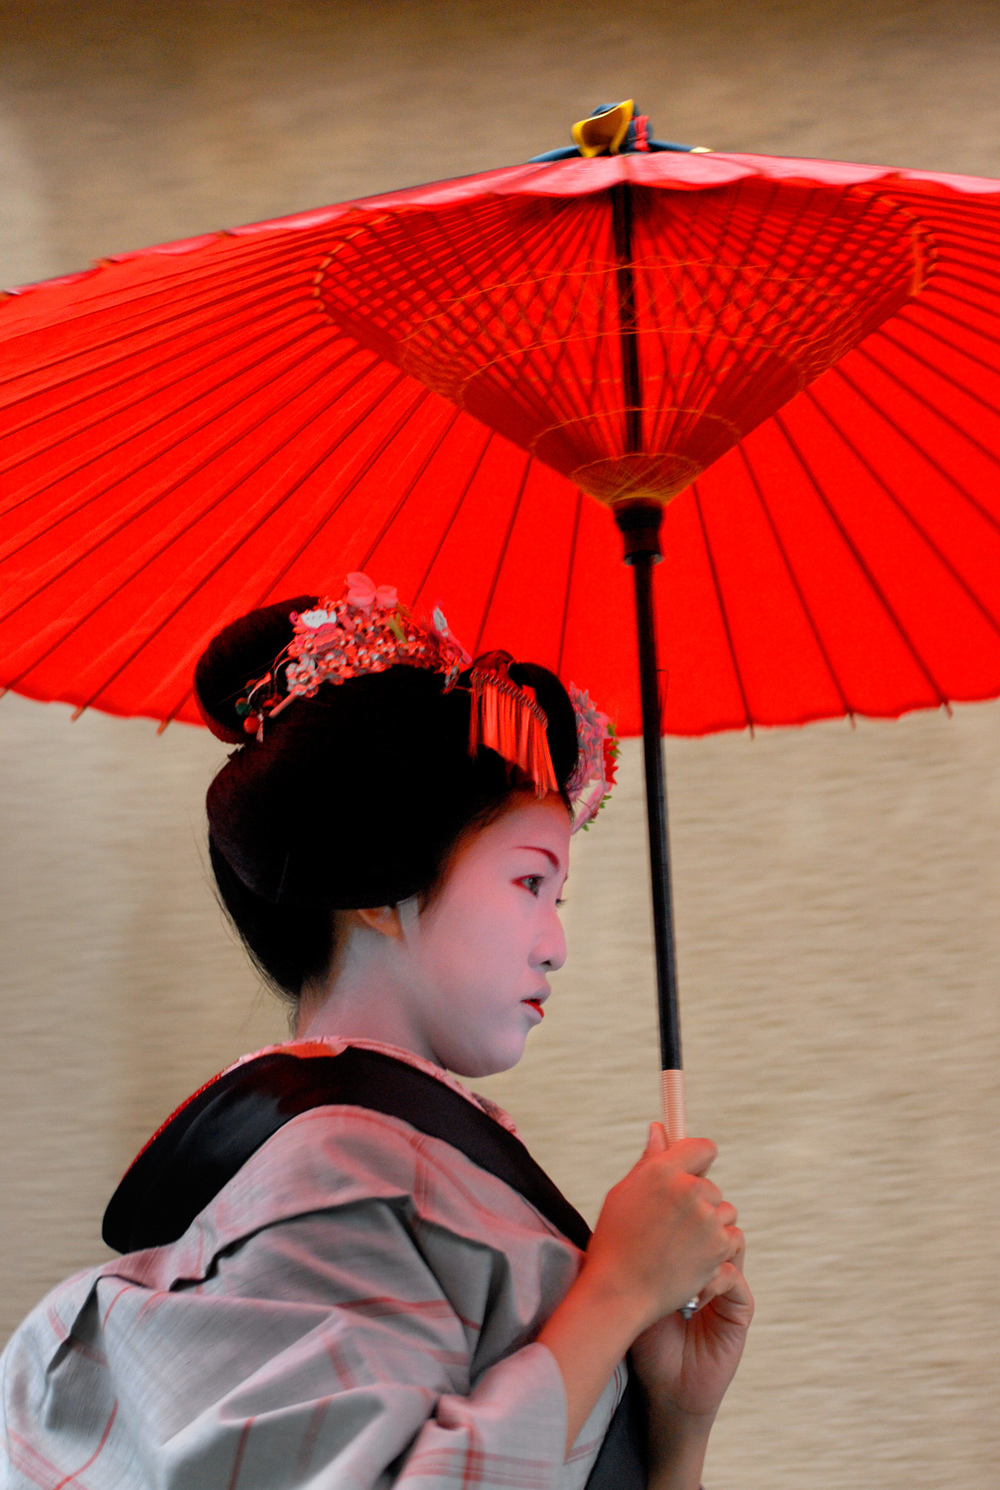 Maiko in the rain with a parasol